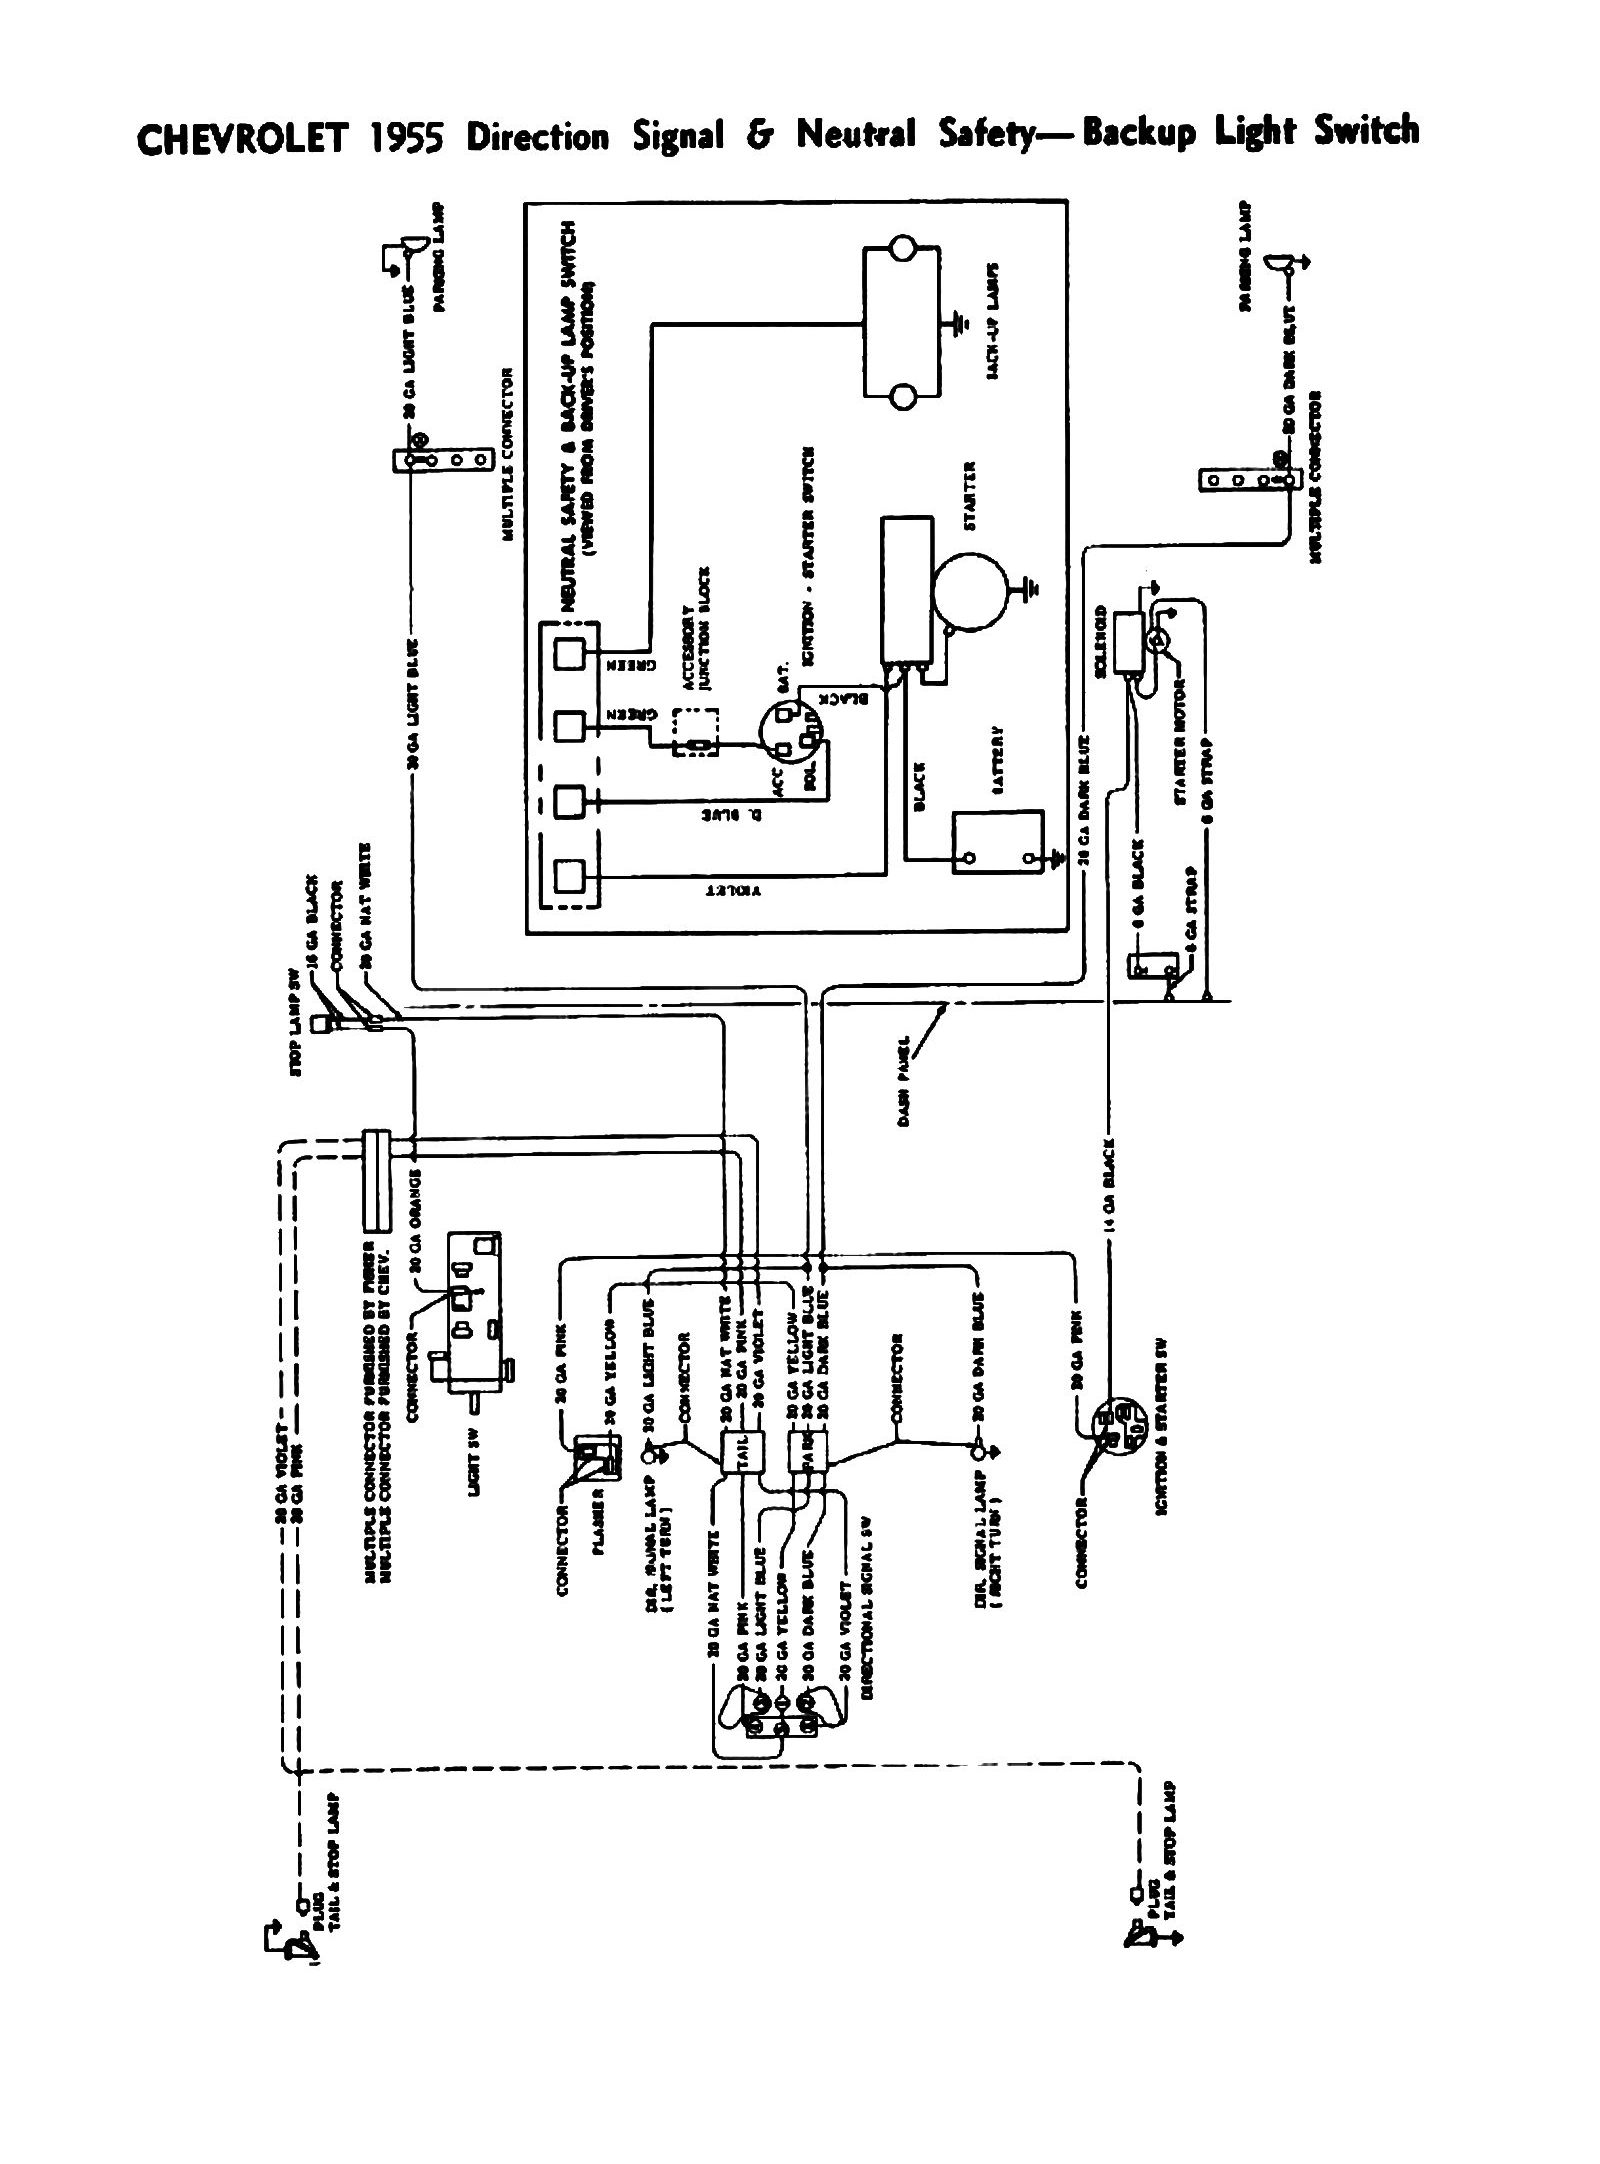 2000 ford f650 fuse box diagram 2000 manual repair wiring and engine 2011 ford f750 fuse box diagram